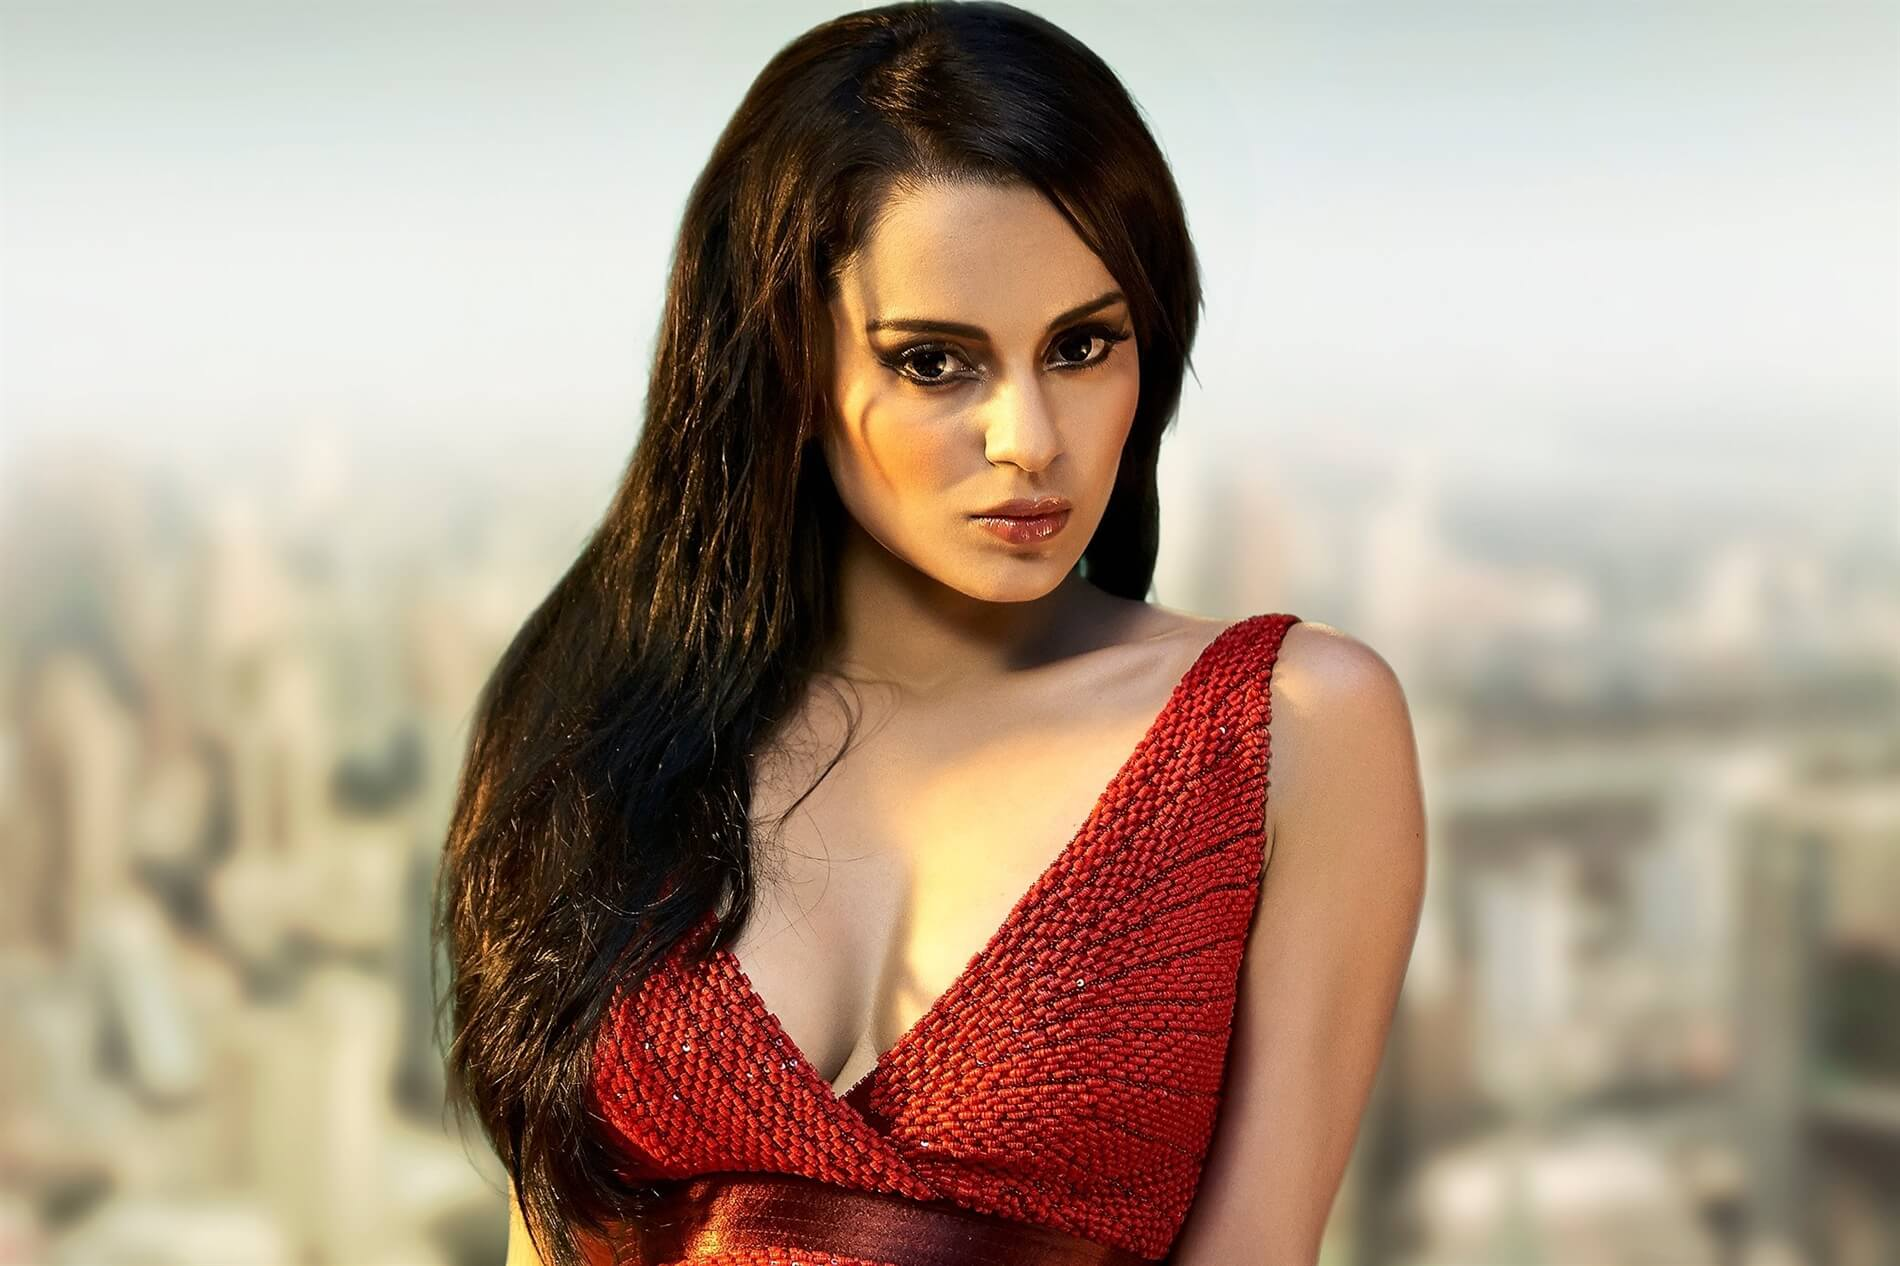 Kangana Ranaut age, sister, image, latest news, net worth, biography, husband, height, awards, photos, date of birth, twitter, instagram, wiki